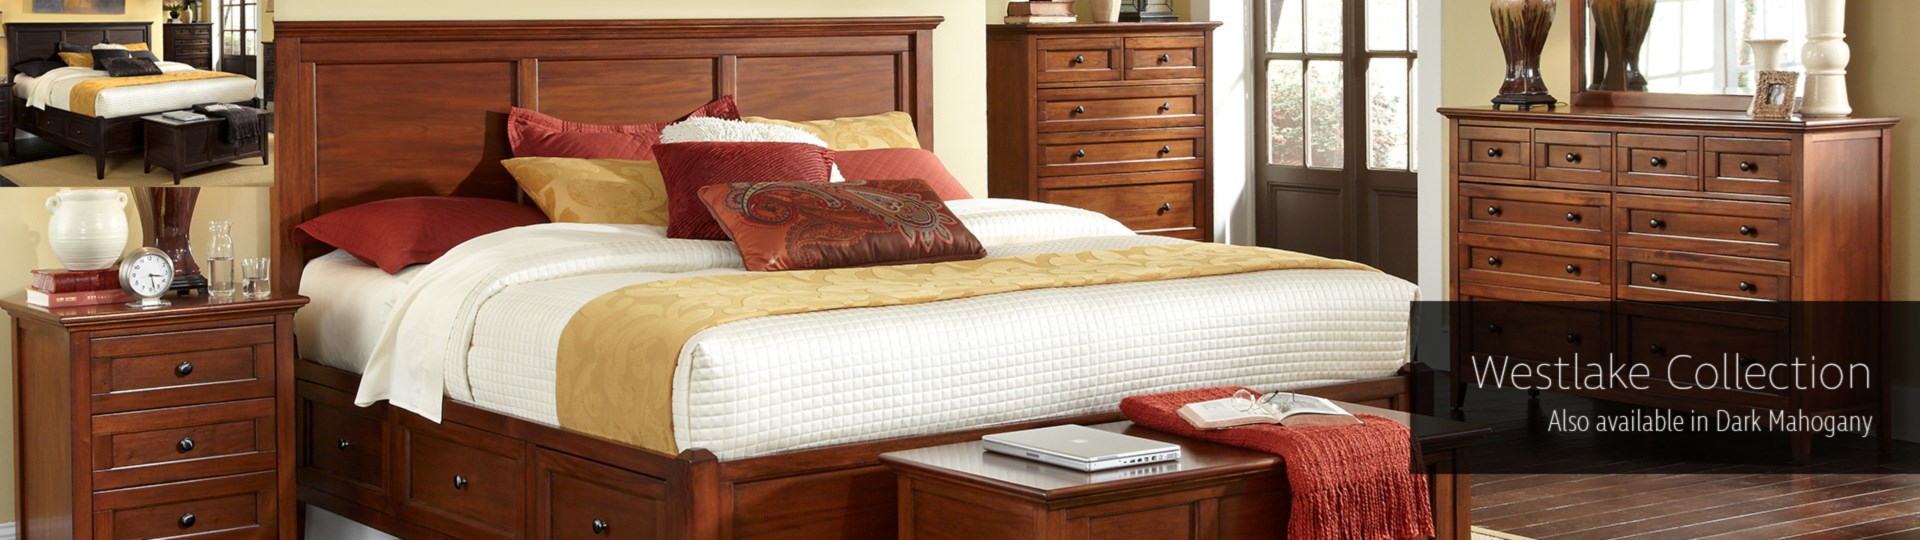 A America Westlake Bedroom Collection